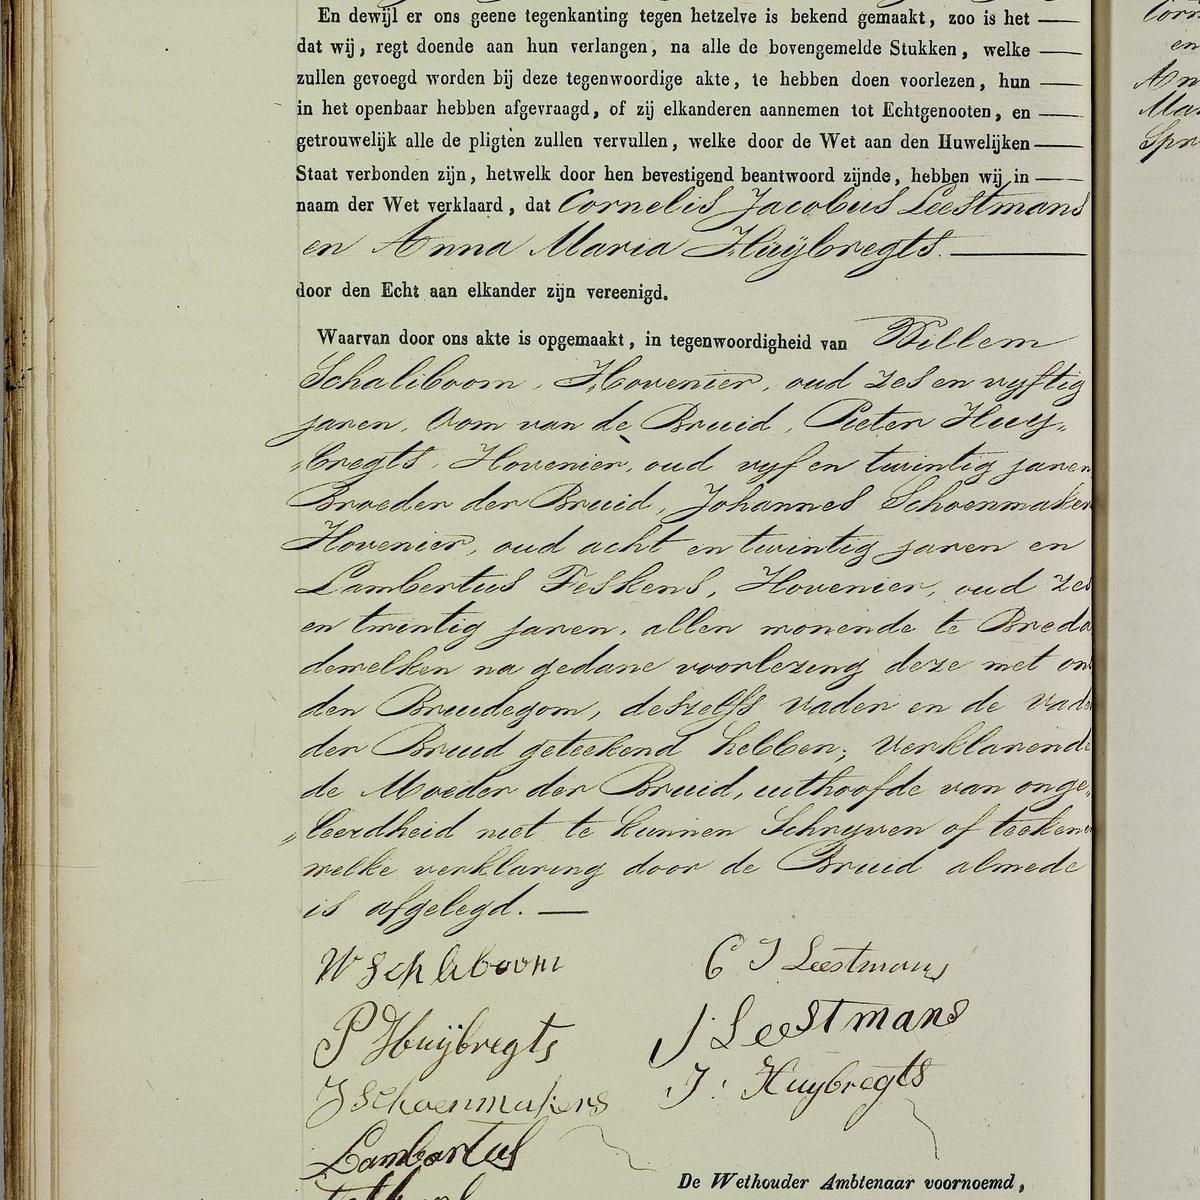 Civil registry of marriages, Breda, 1846, record 74, left page